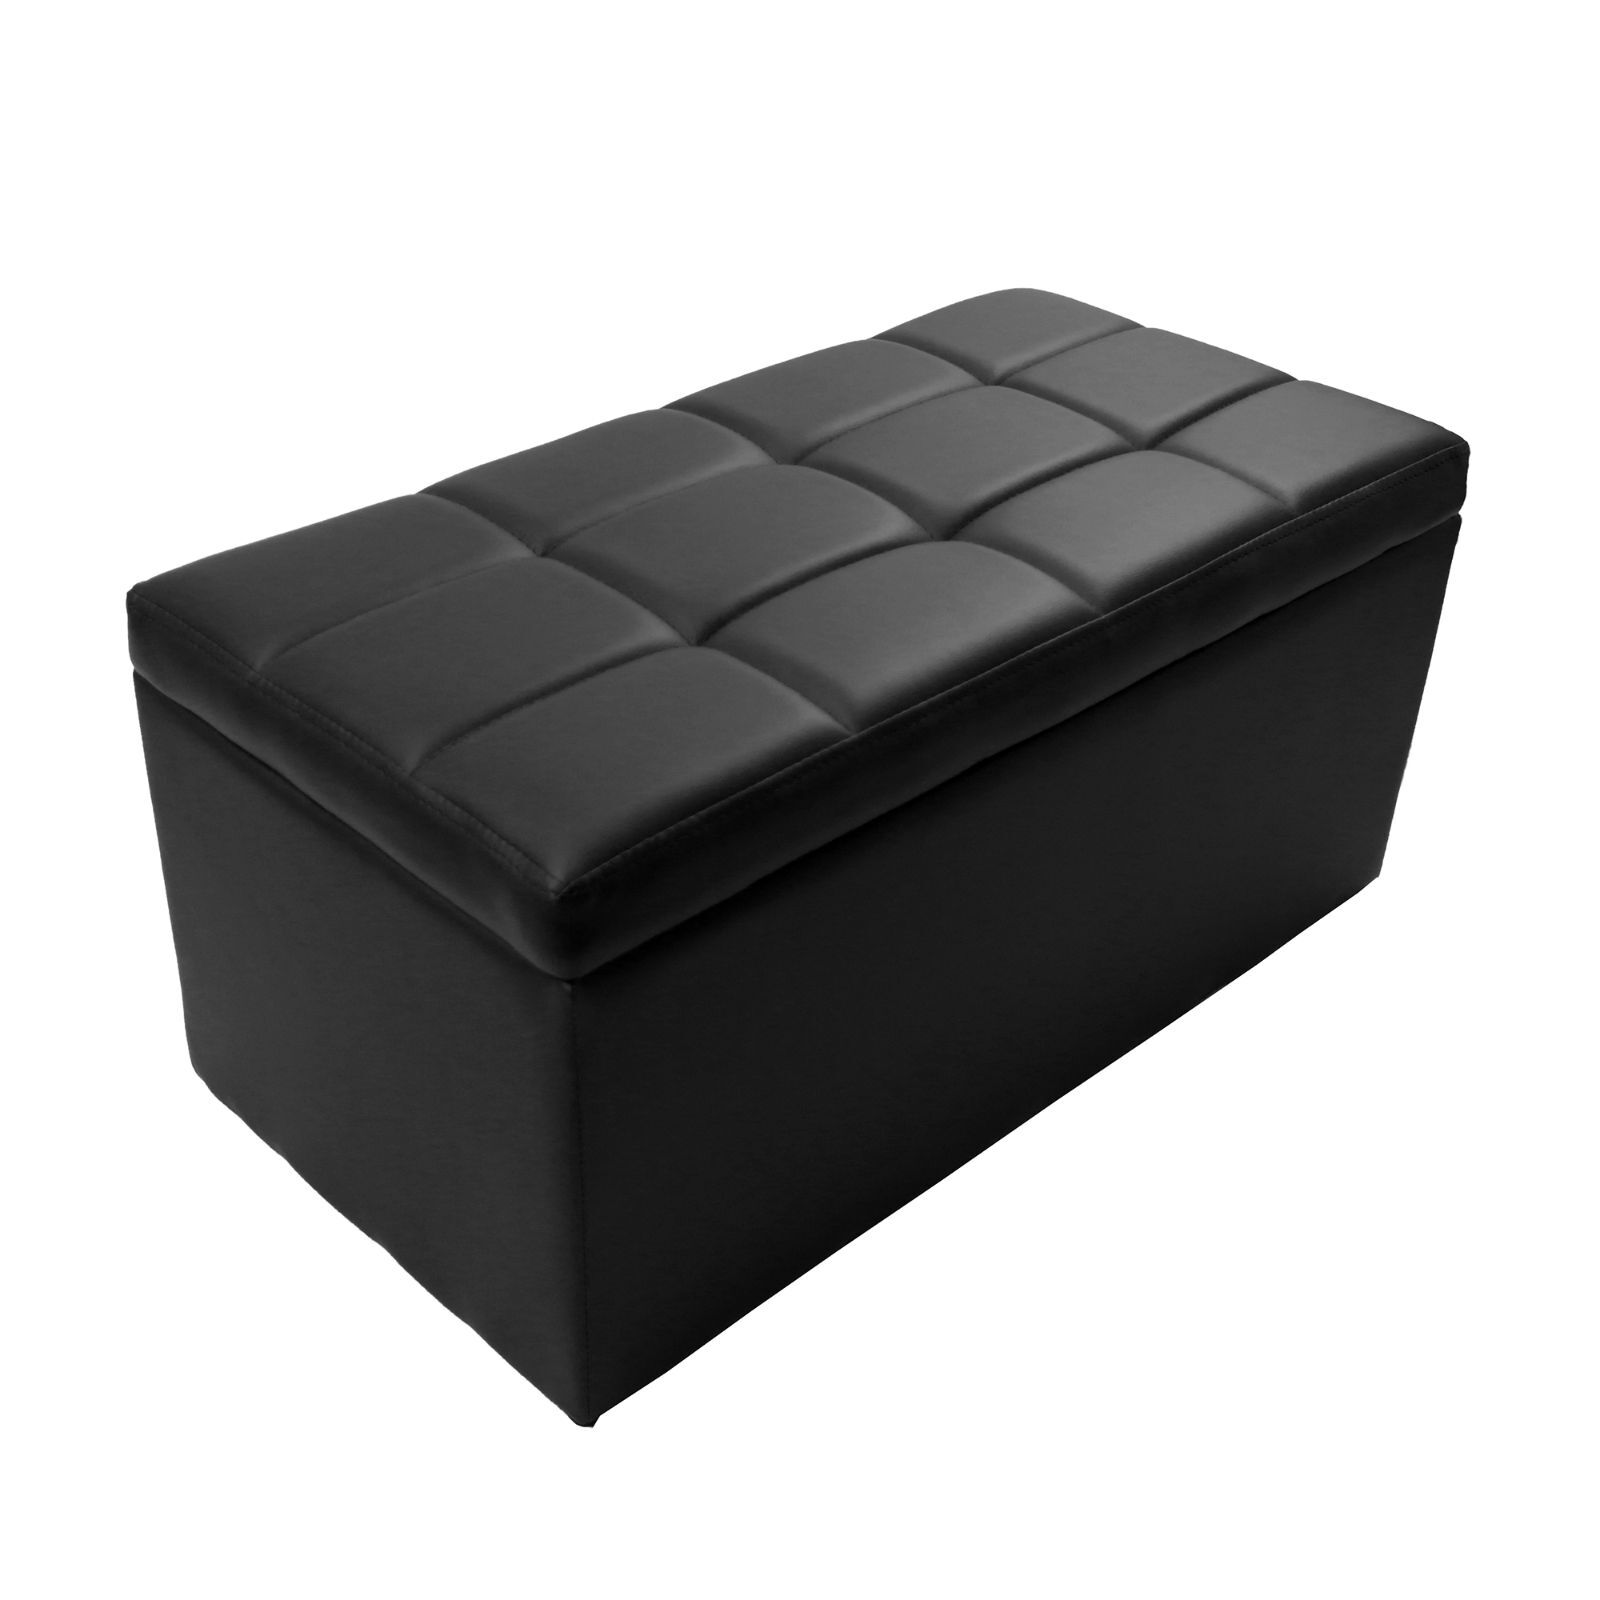 Black Faux Leather Storage Foot Rest Lift Top Bench Ottoman Coffee Table Unfold Ebay